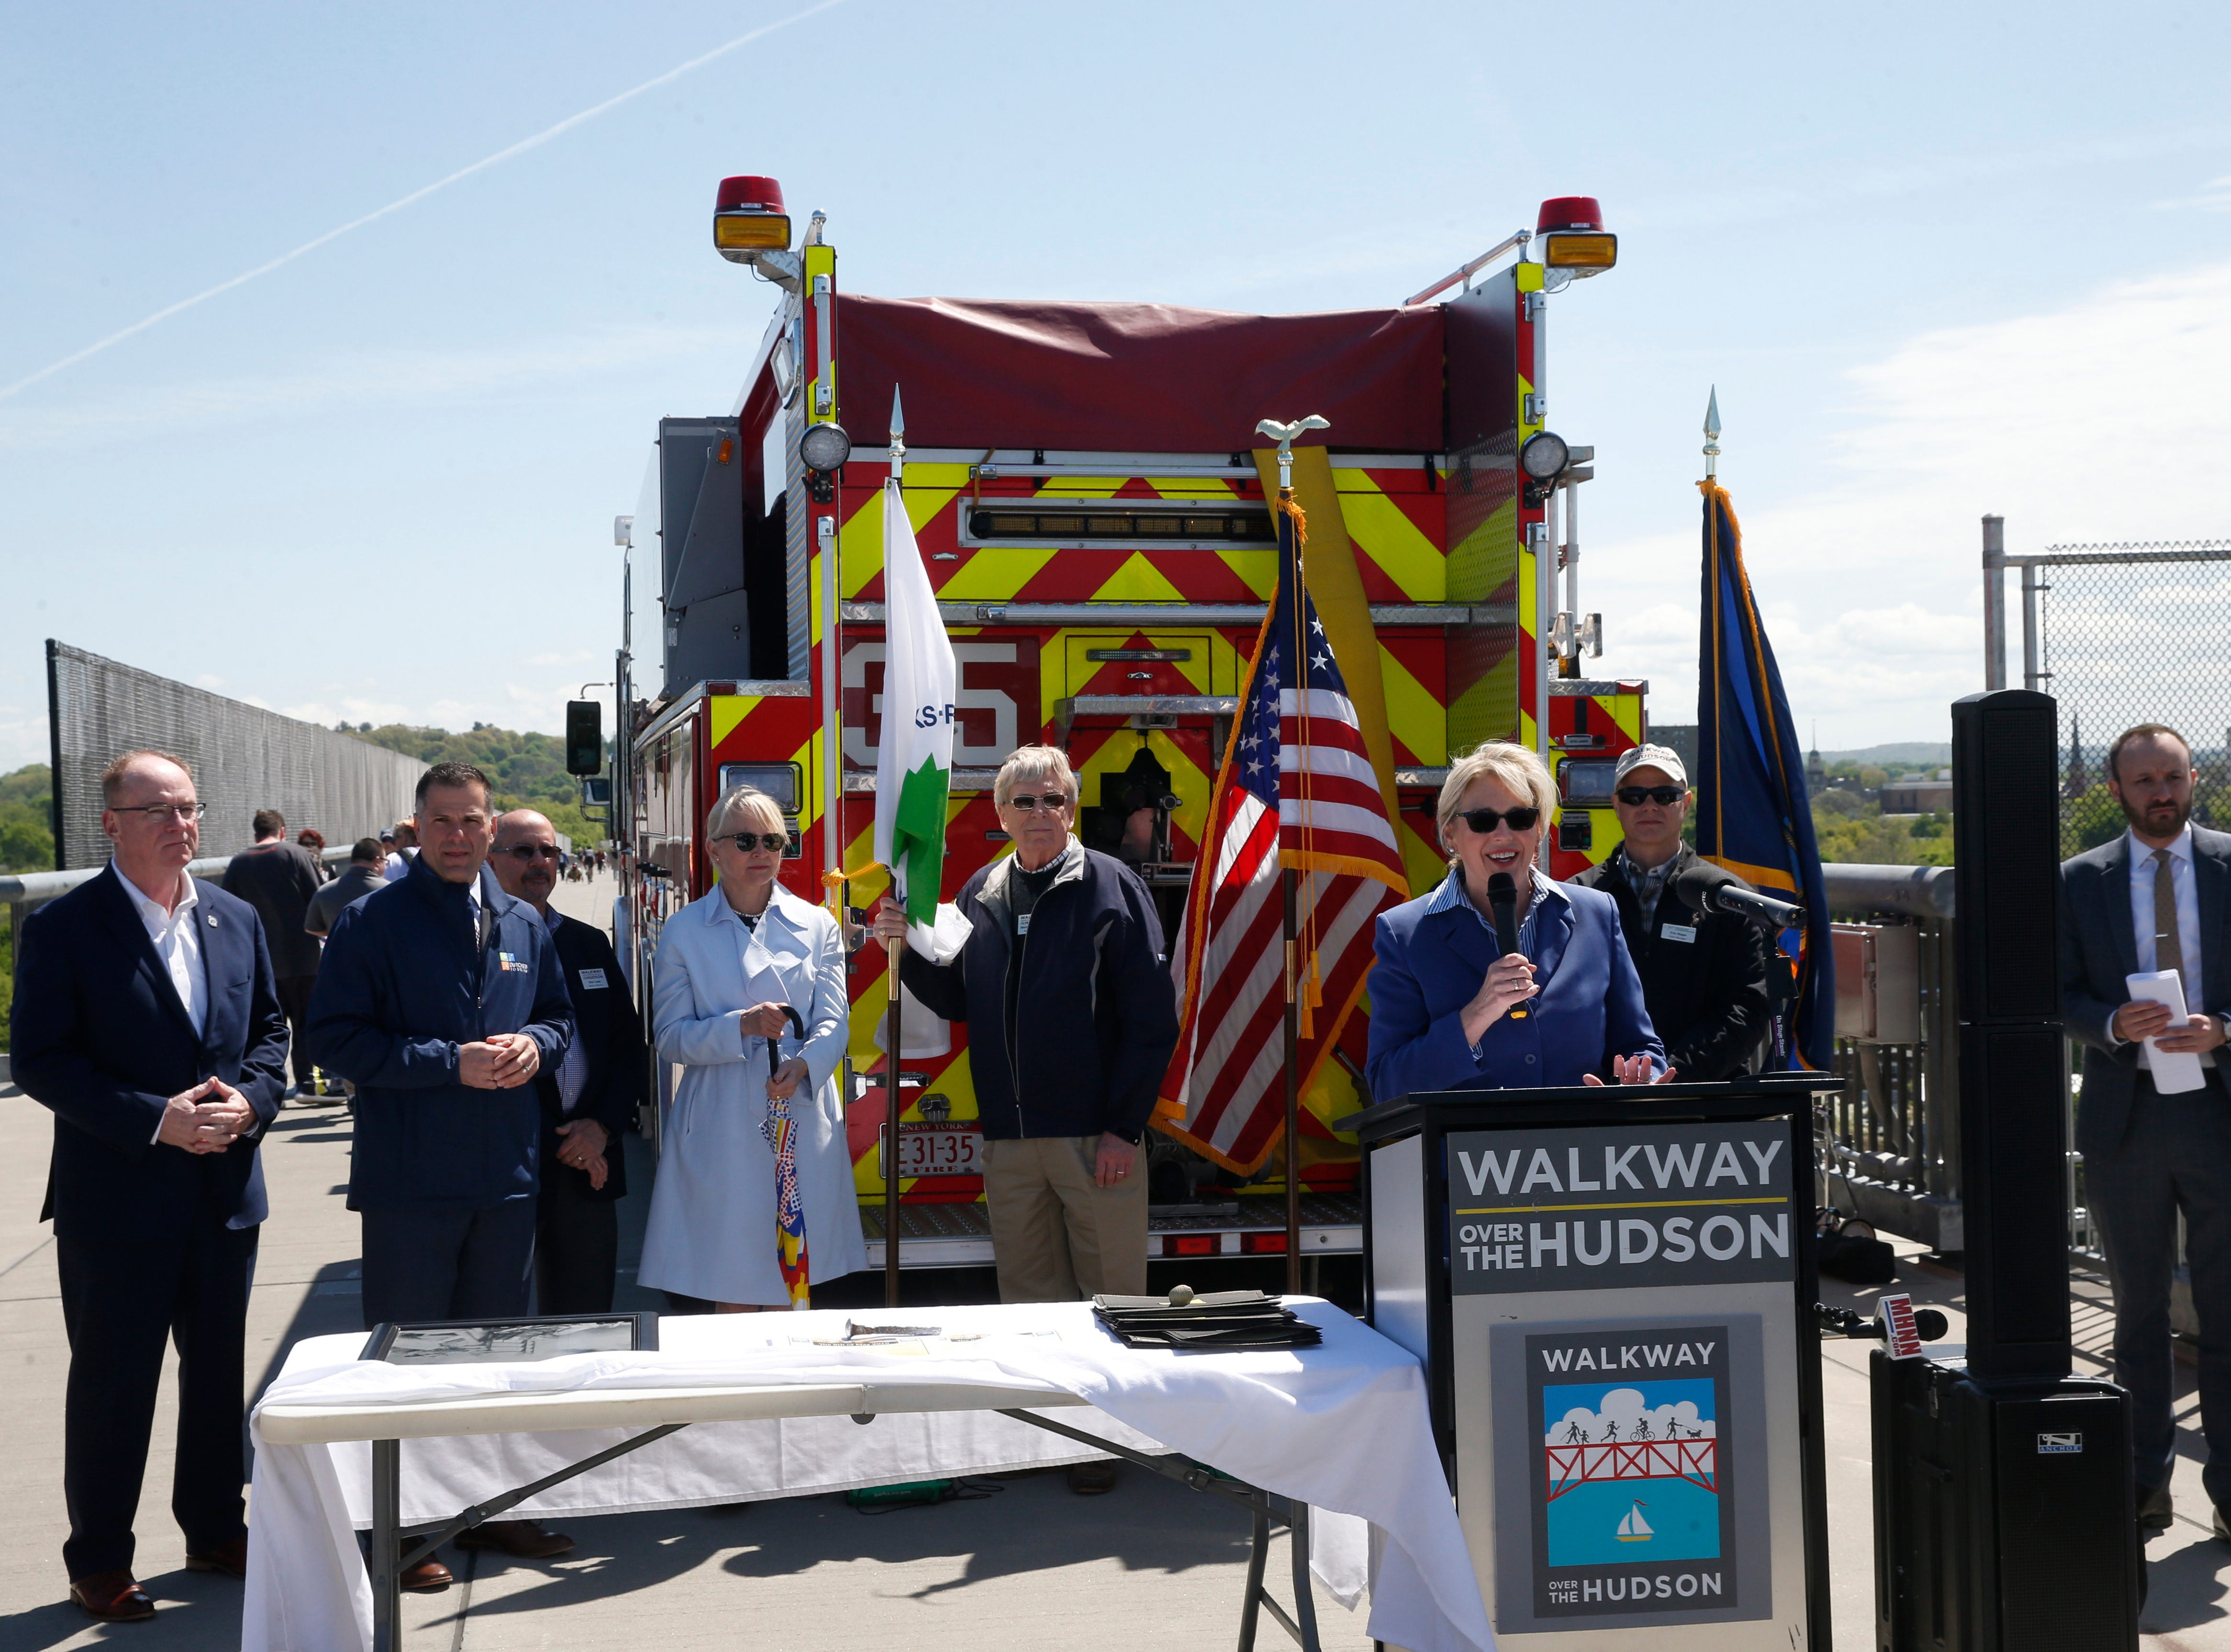 Walkway Over the Hudson executive director Elizabeth Waldstein-Hart speaks during Wednesday's commemoration of 45th anniversary of the fire that engulfed the railroad bridge on May 8, 2019.